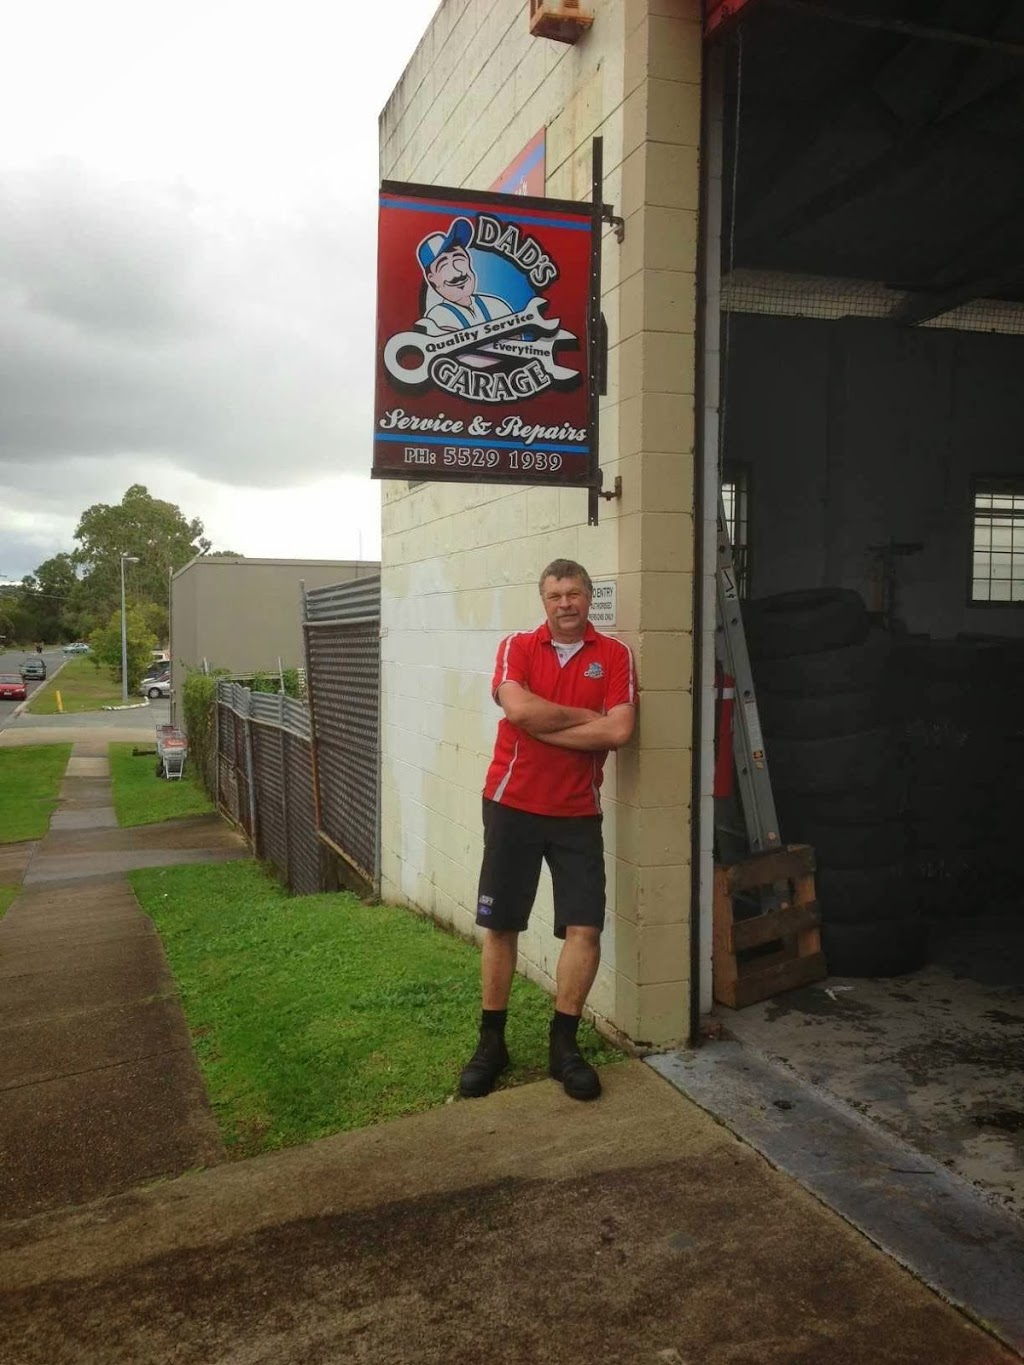 Dads Garage | car repair | 6/19 Ashton St, Labrador QLD 4215, Australia | 0755291939 OR +61 7 5529 1939